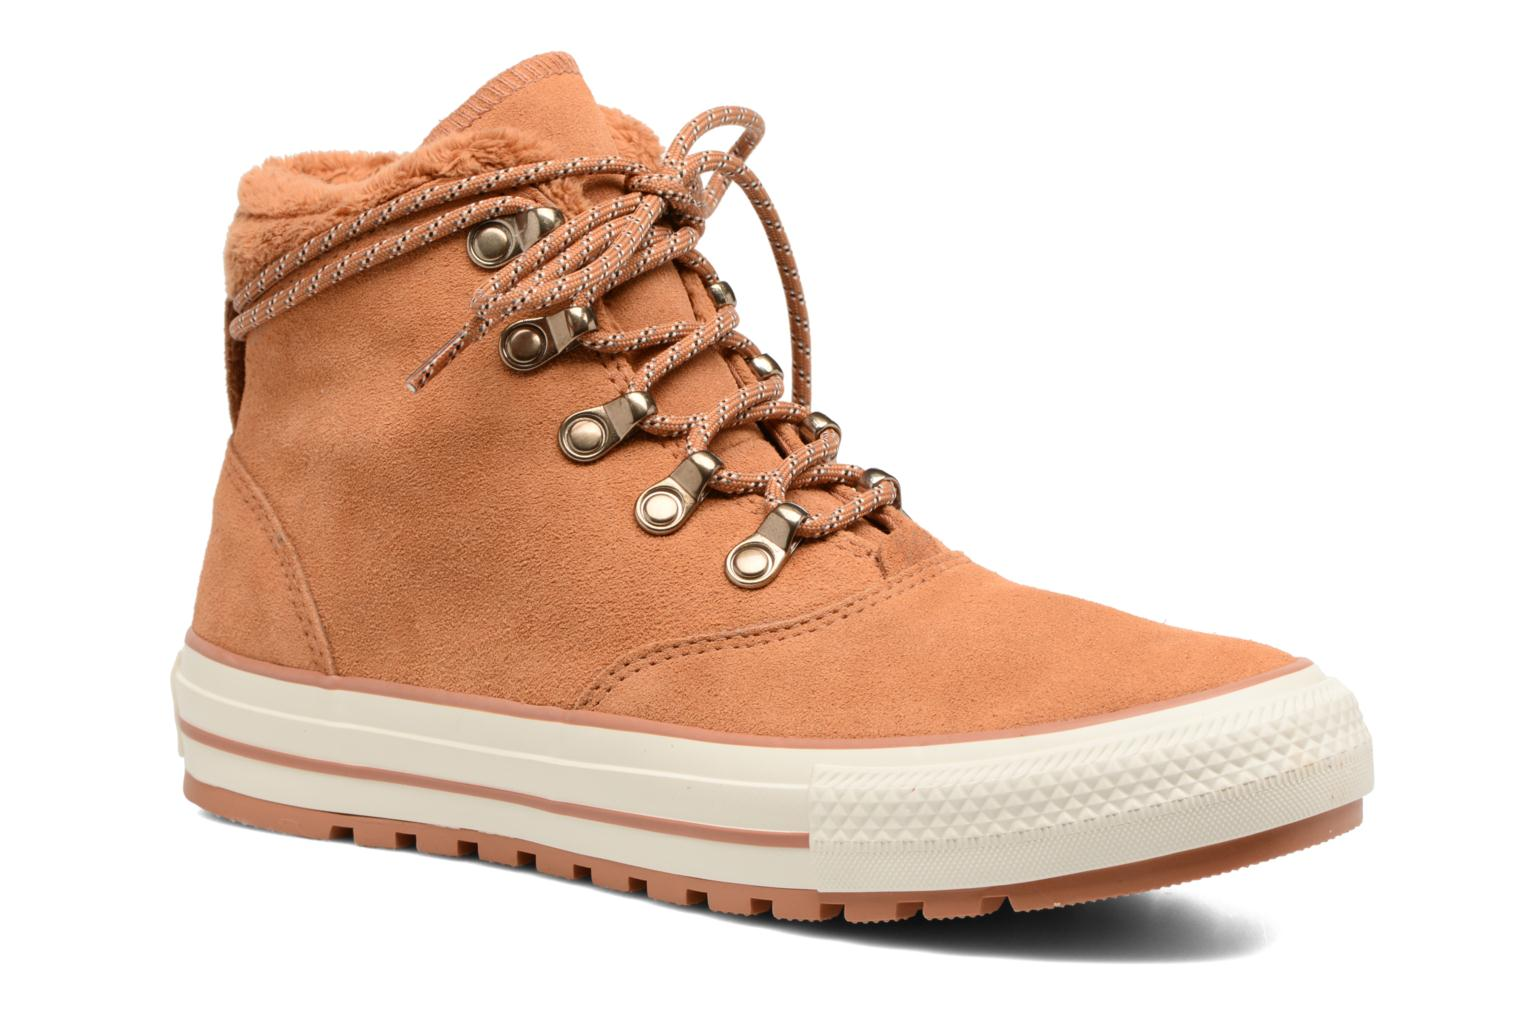 Converse Chuck Taylor All Star Ember Boot Suede + Fur Hi (Marron) - Bottines et boots chez Sarenza (310701)